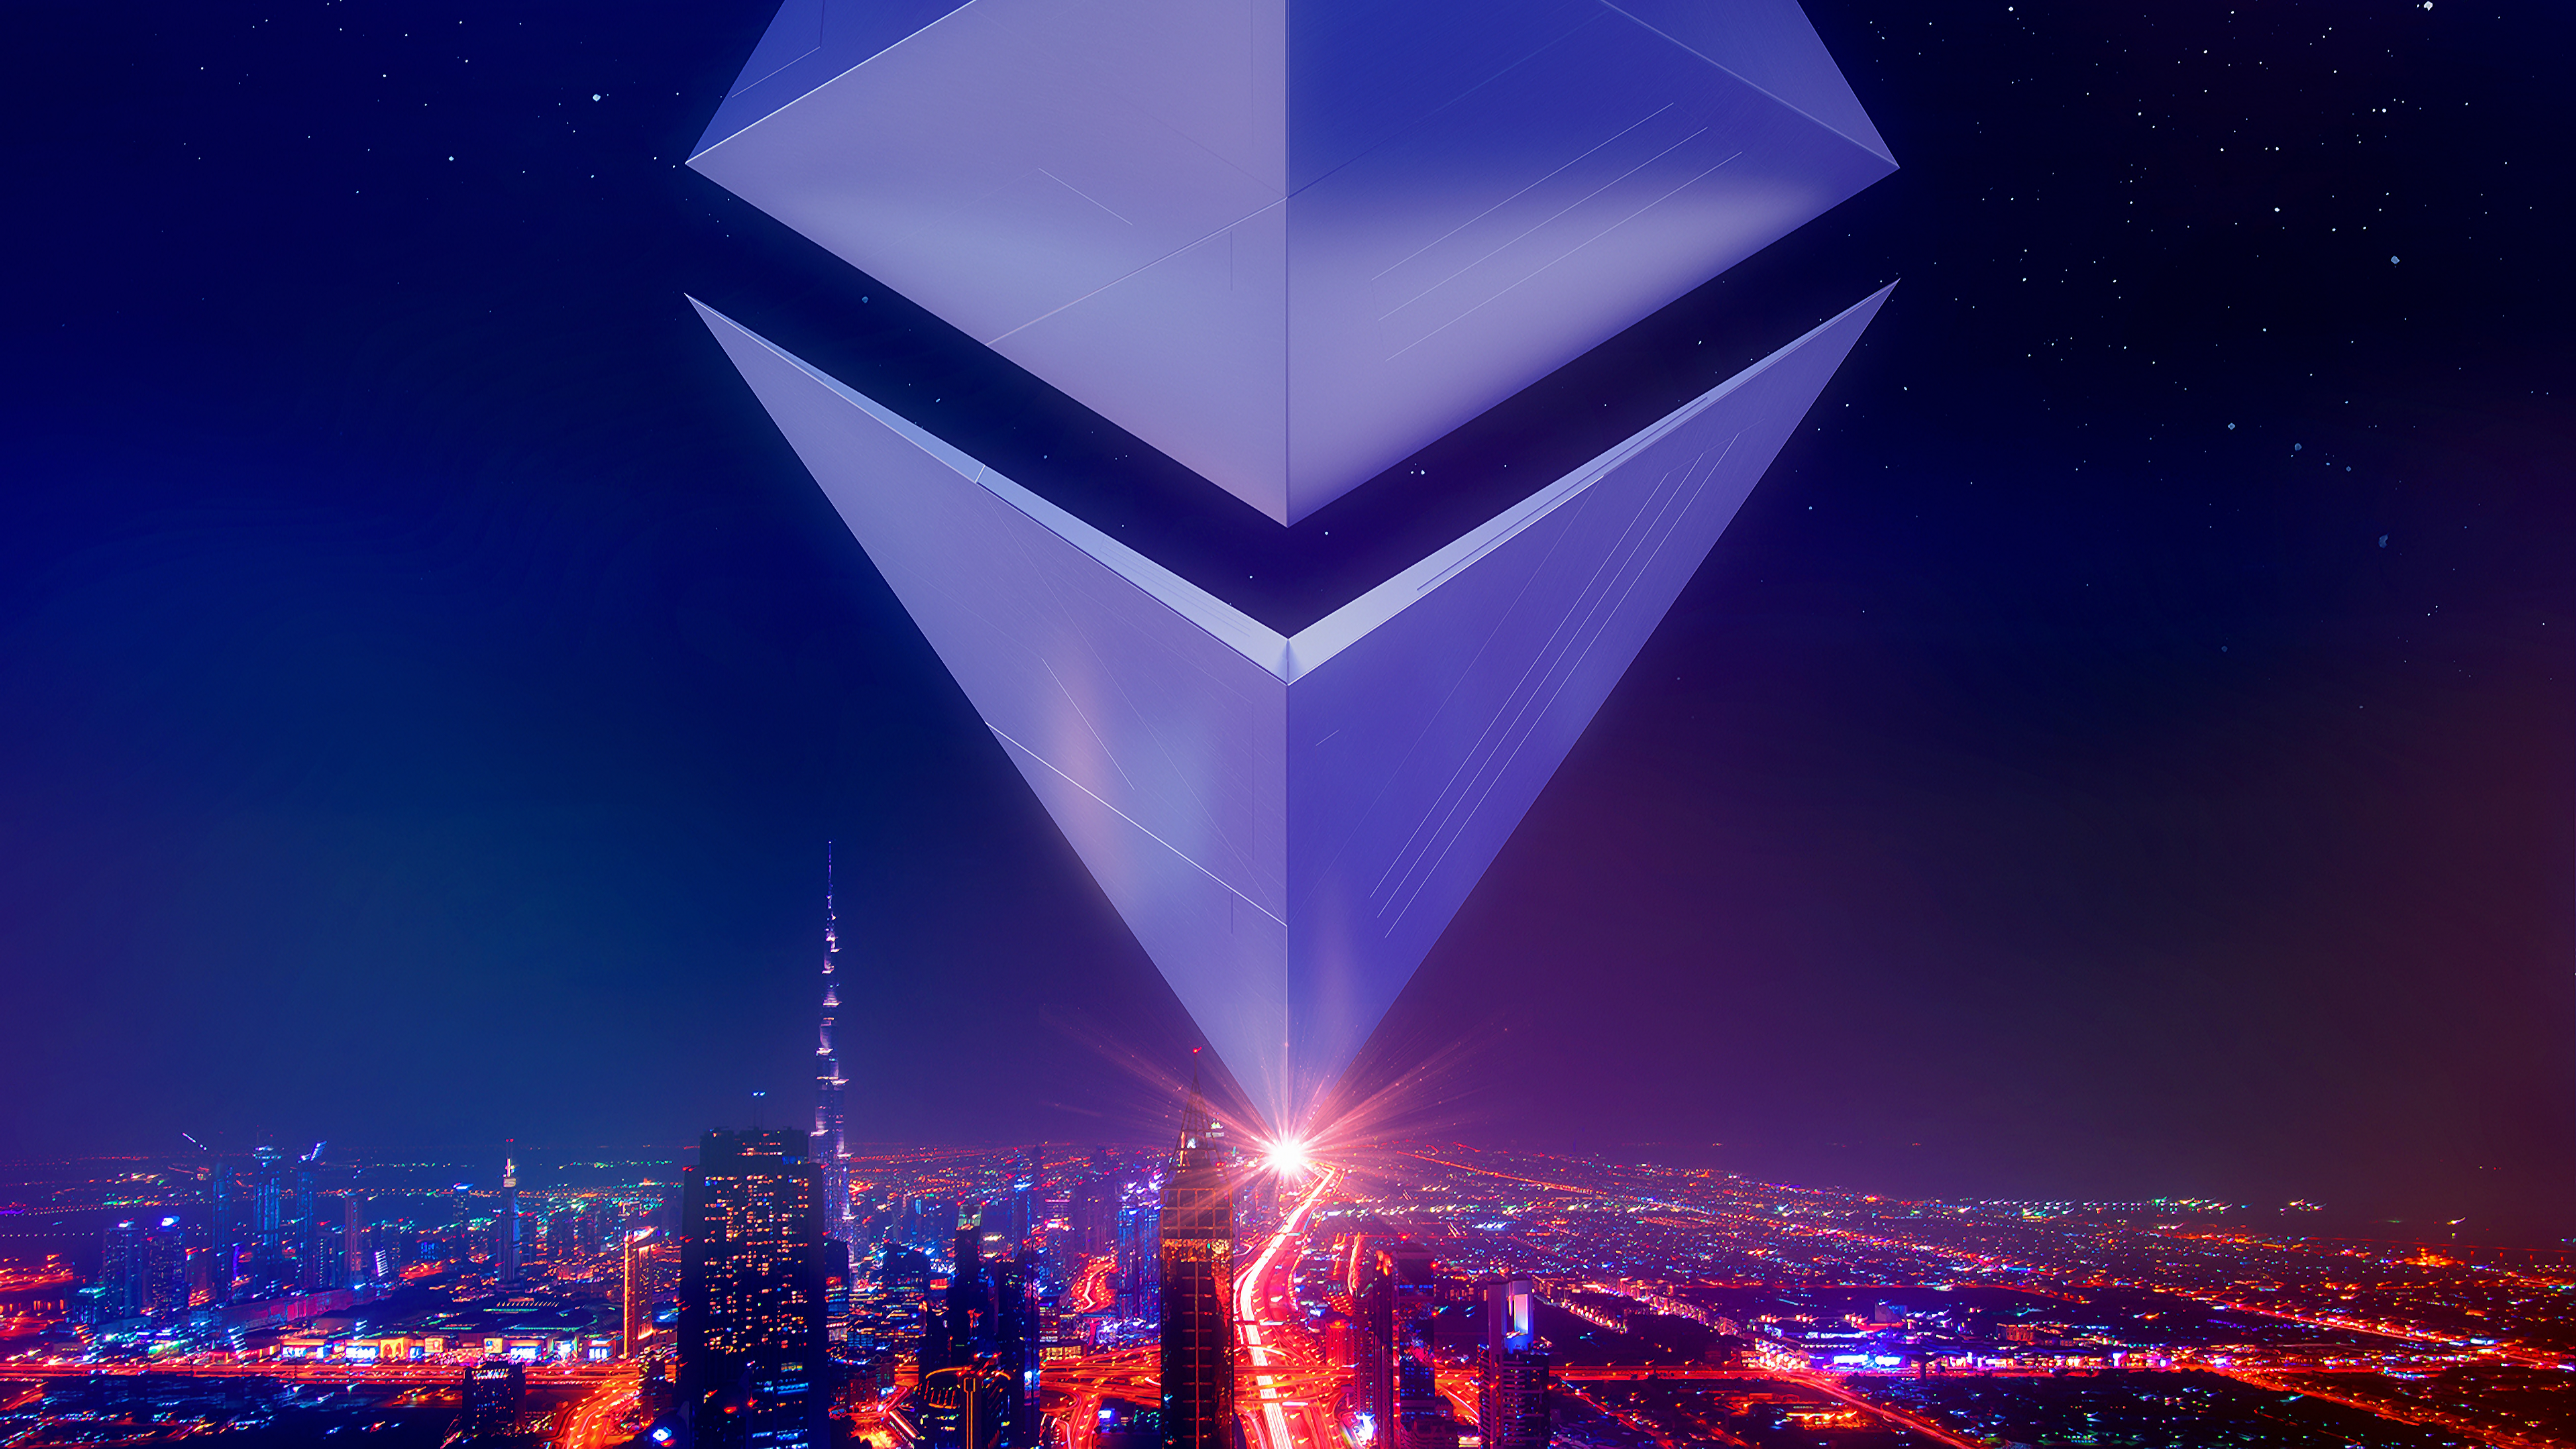 Ethereum Invasion Four 4k Ultra HD Wallpaper Background Image 3840x2160